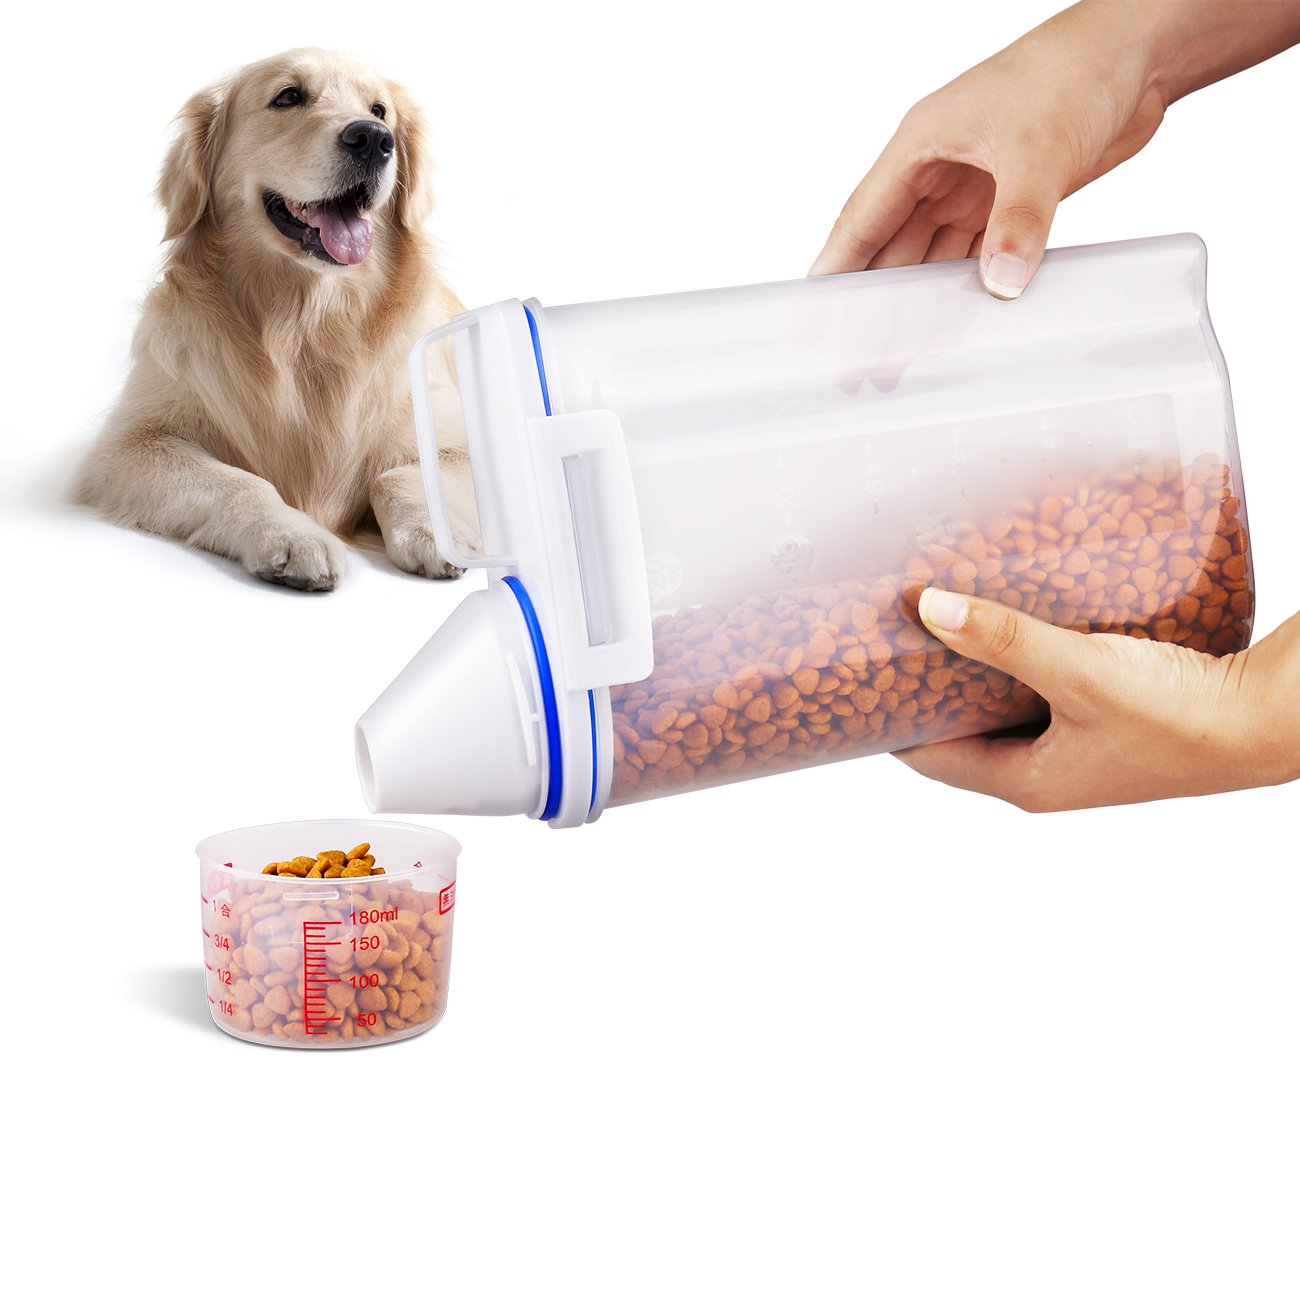 Dog food storage container, Cakie Nesting Airtight Pet Food Container with Graduated Cup and Seal Buckles Food Dispenser for Dogs Cats (white)